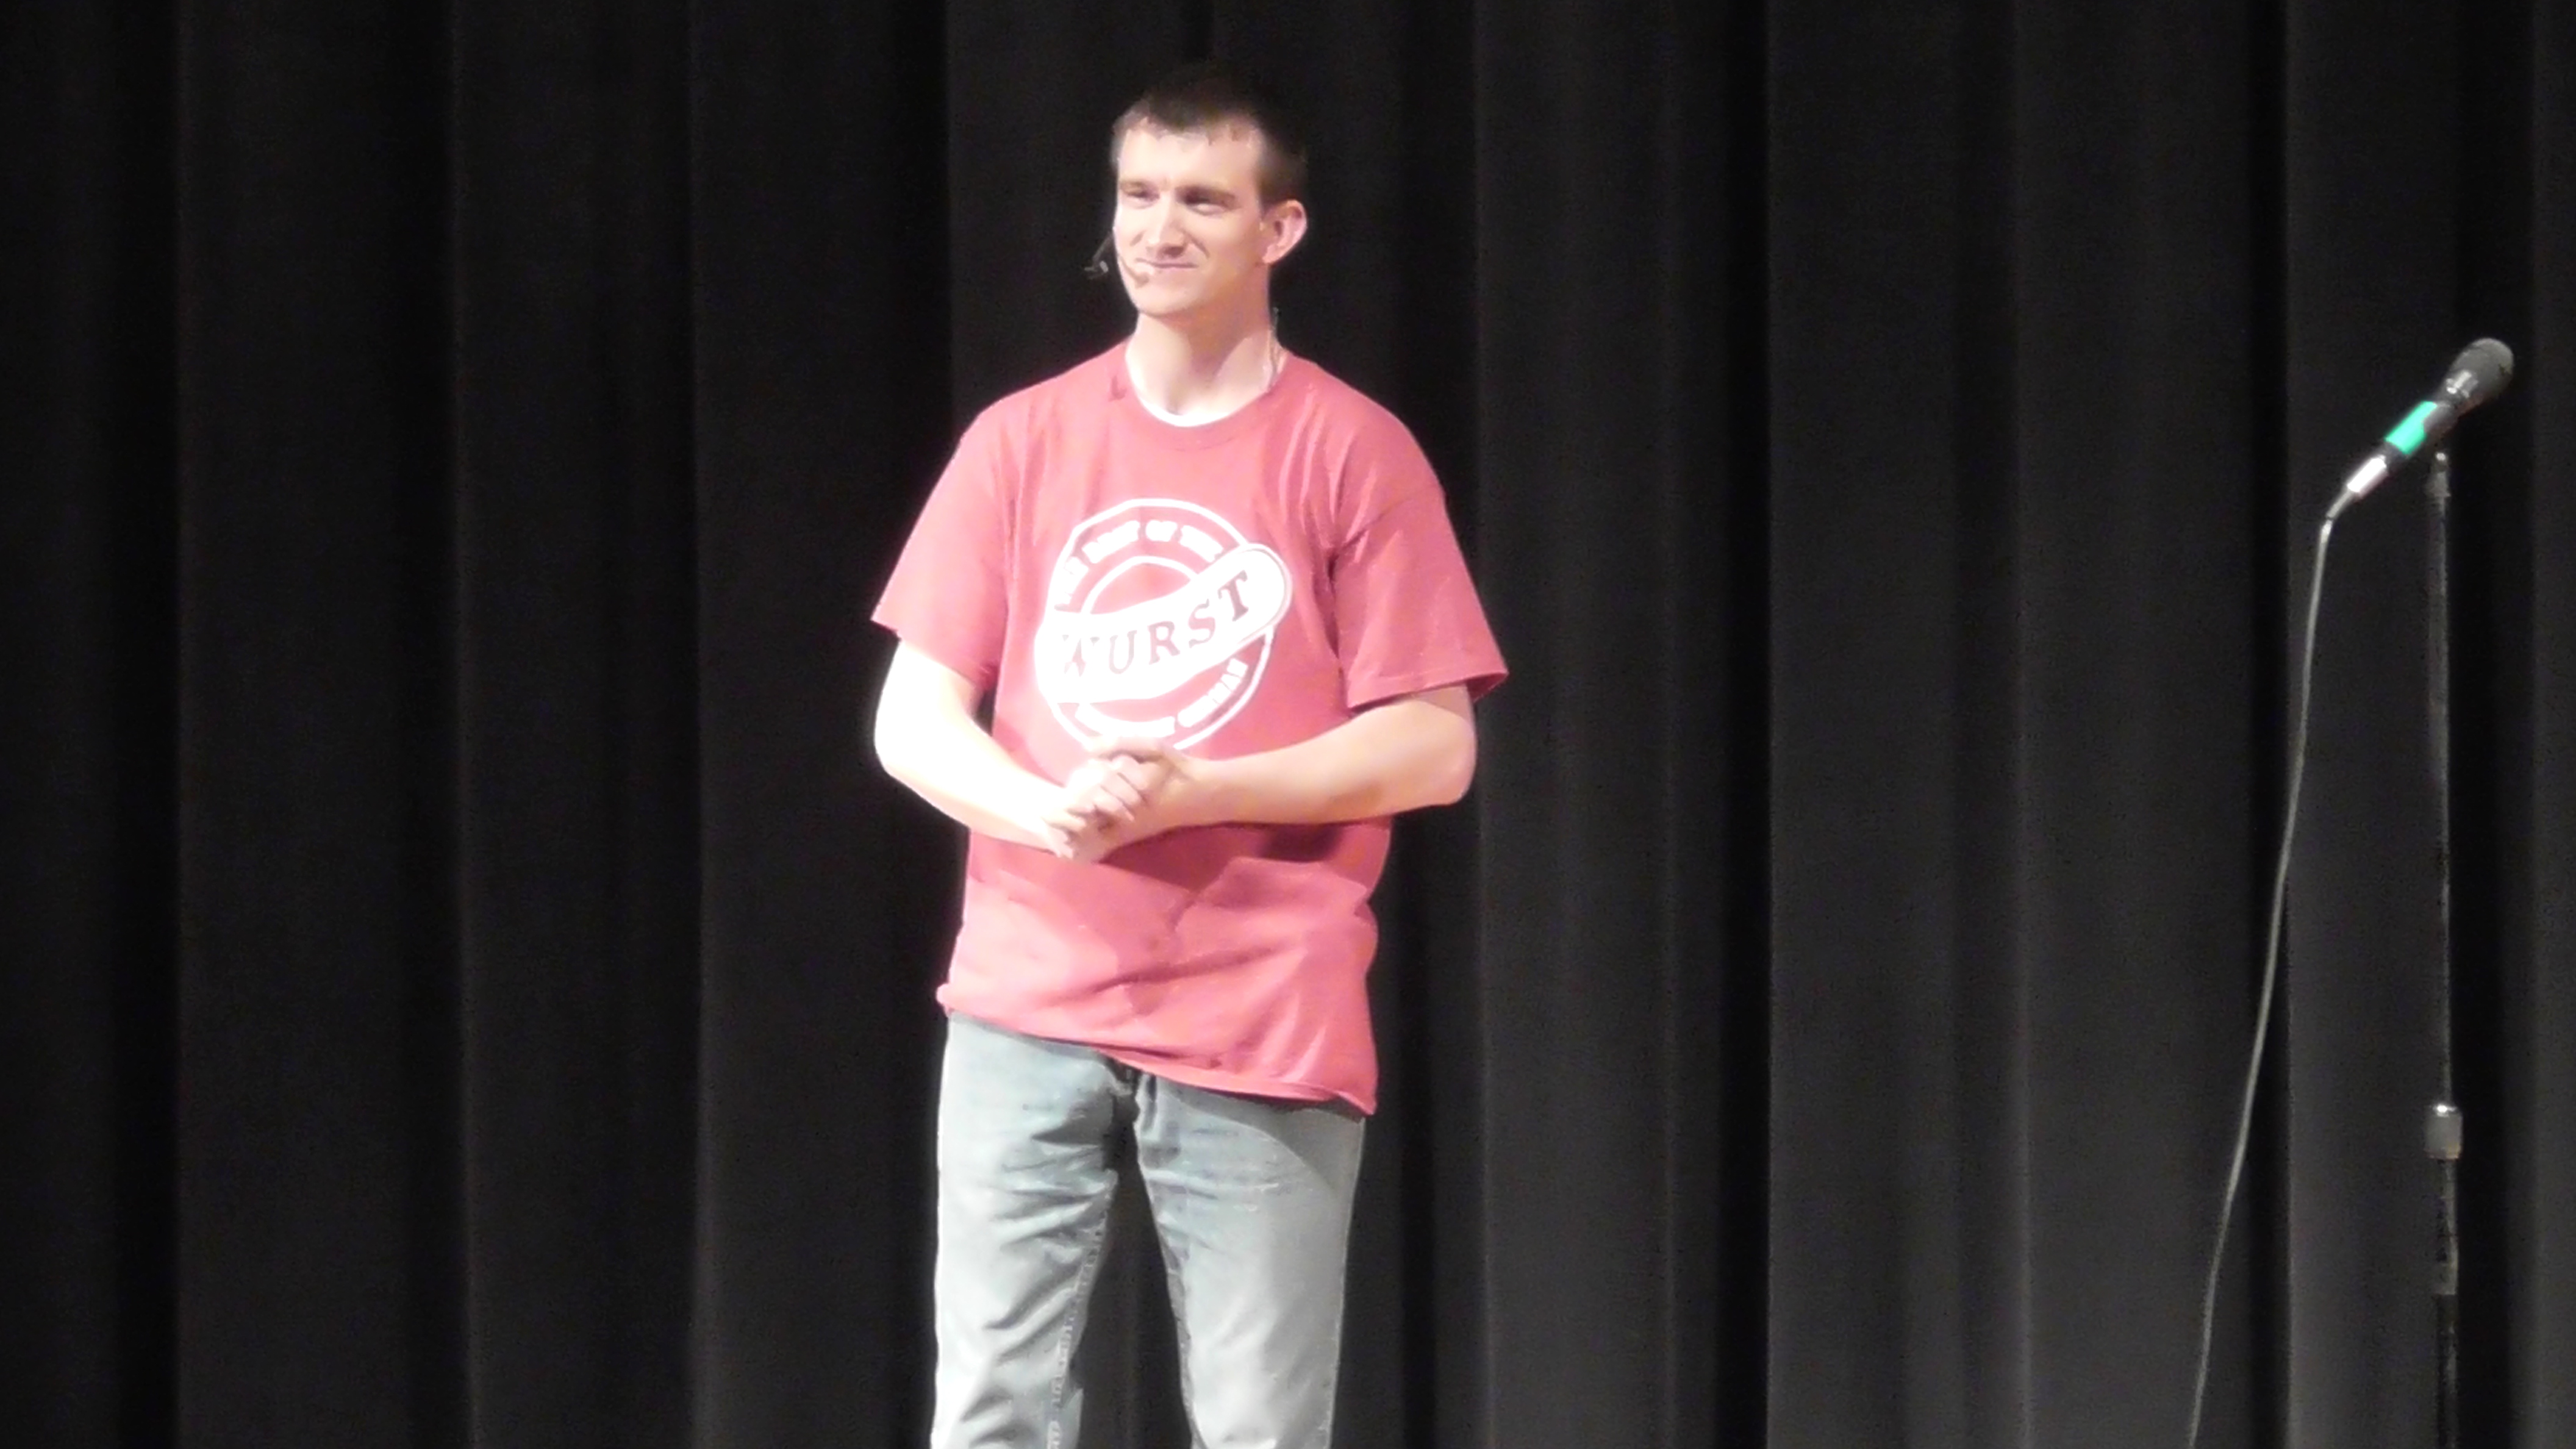 4:28:16 eric stawecki stand-up